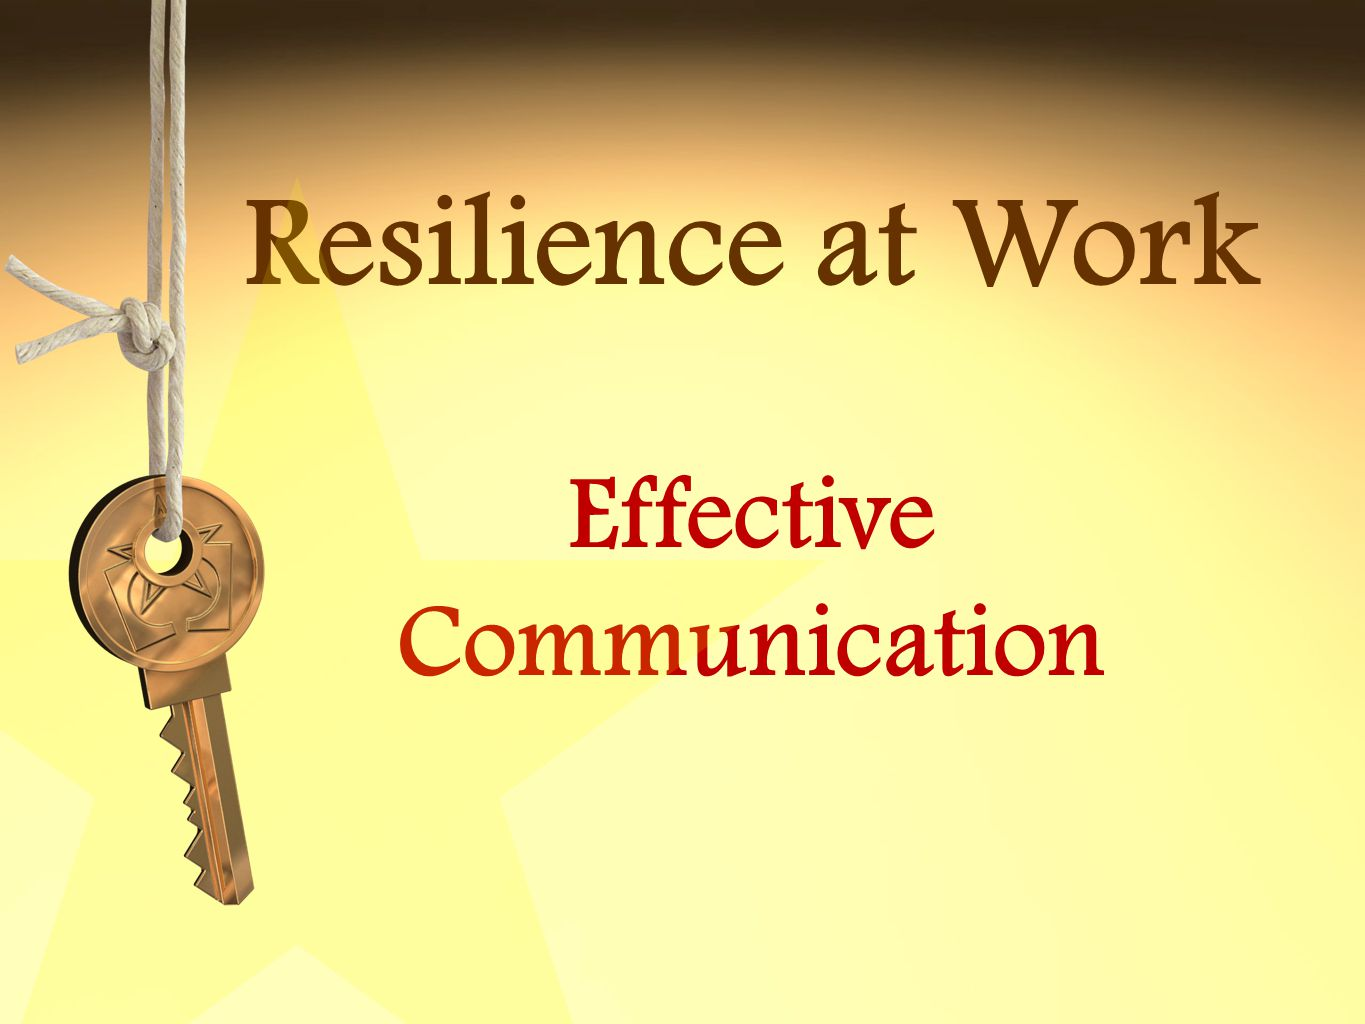 Resilience at Work Effective Communication